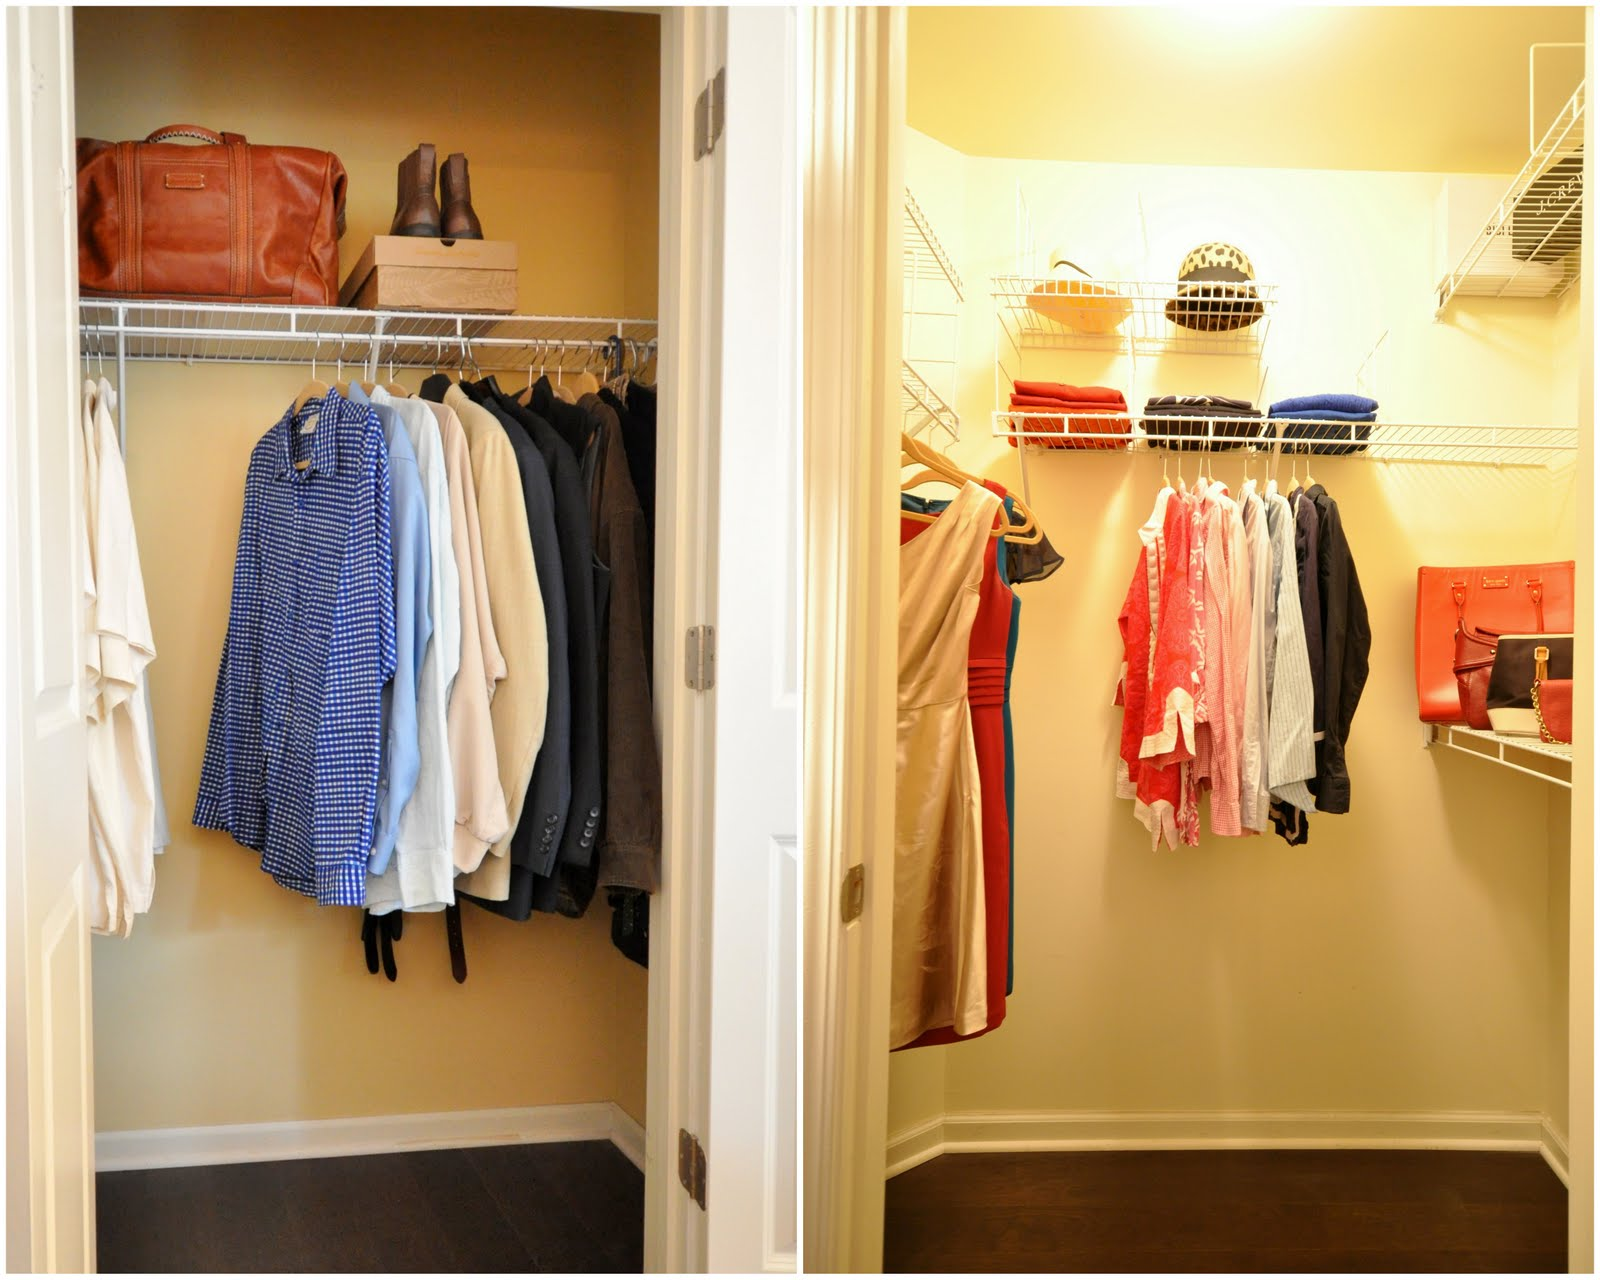 Closet staging for real estate photos and our open house - Small bedroom closet design ideas ...